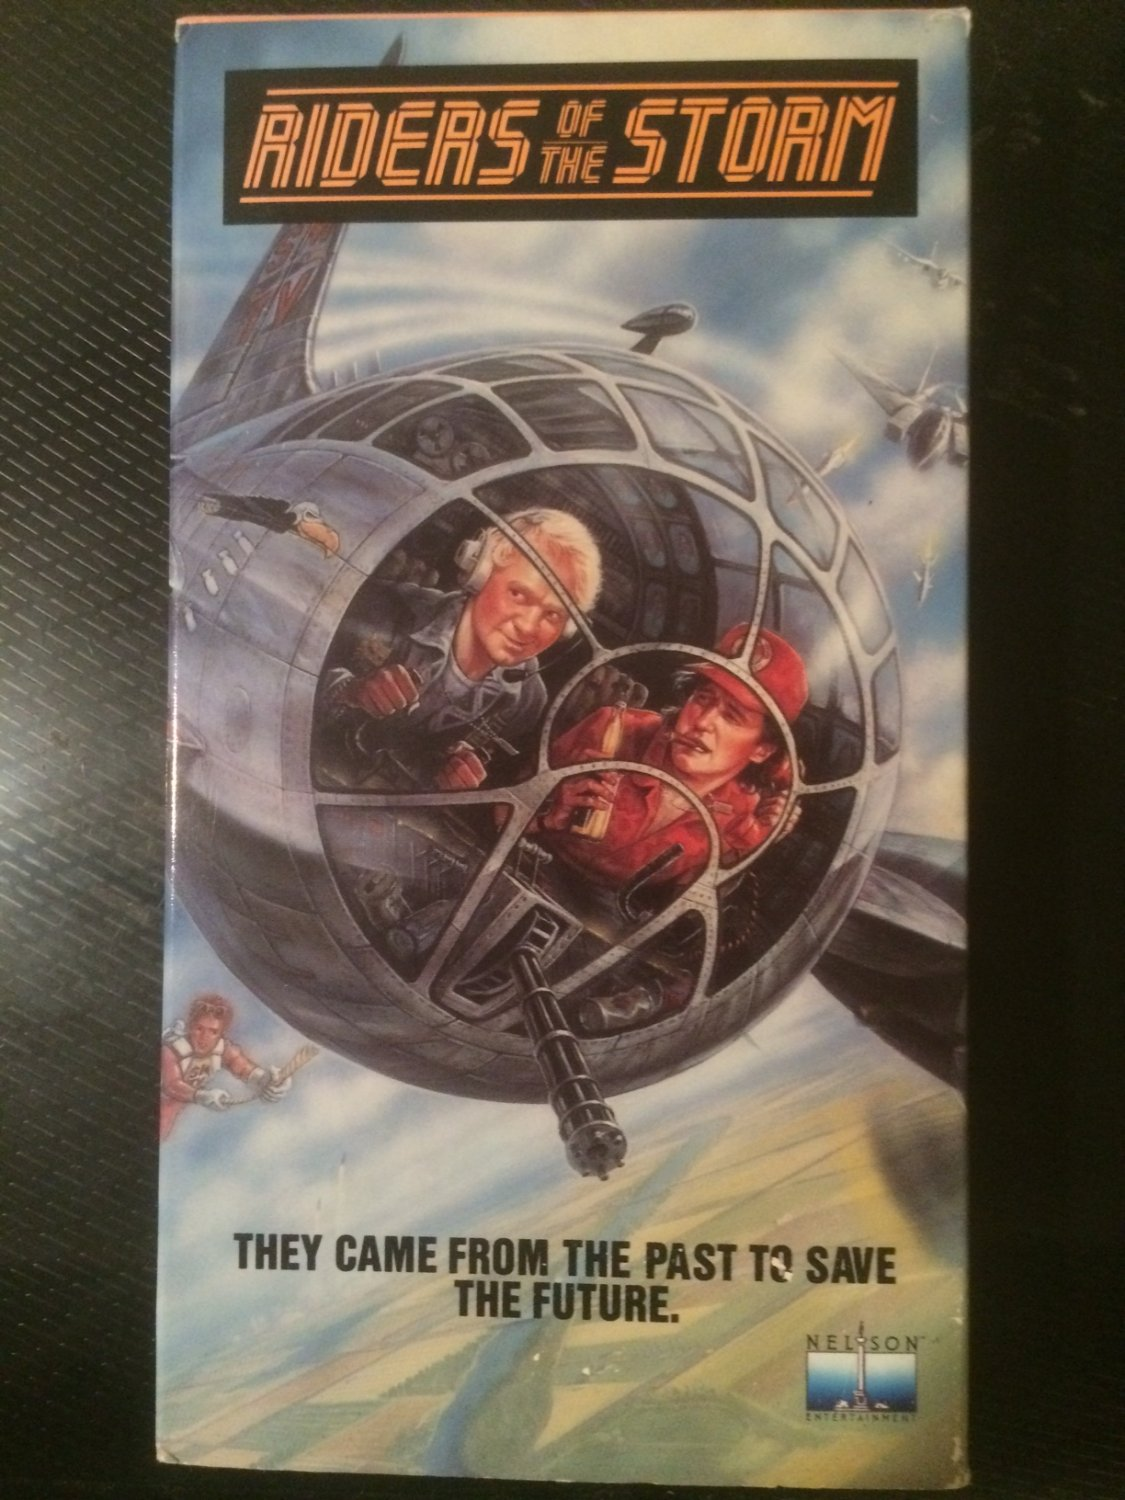 VHS - Riders of the Storm - Used - NOT ON DVD